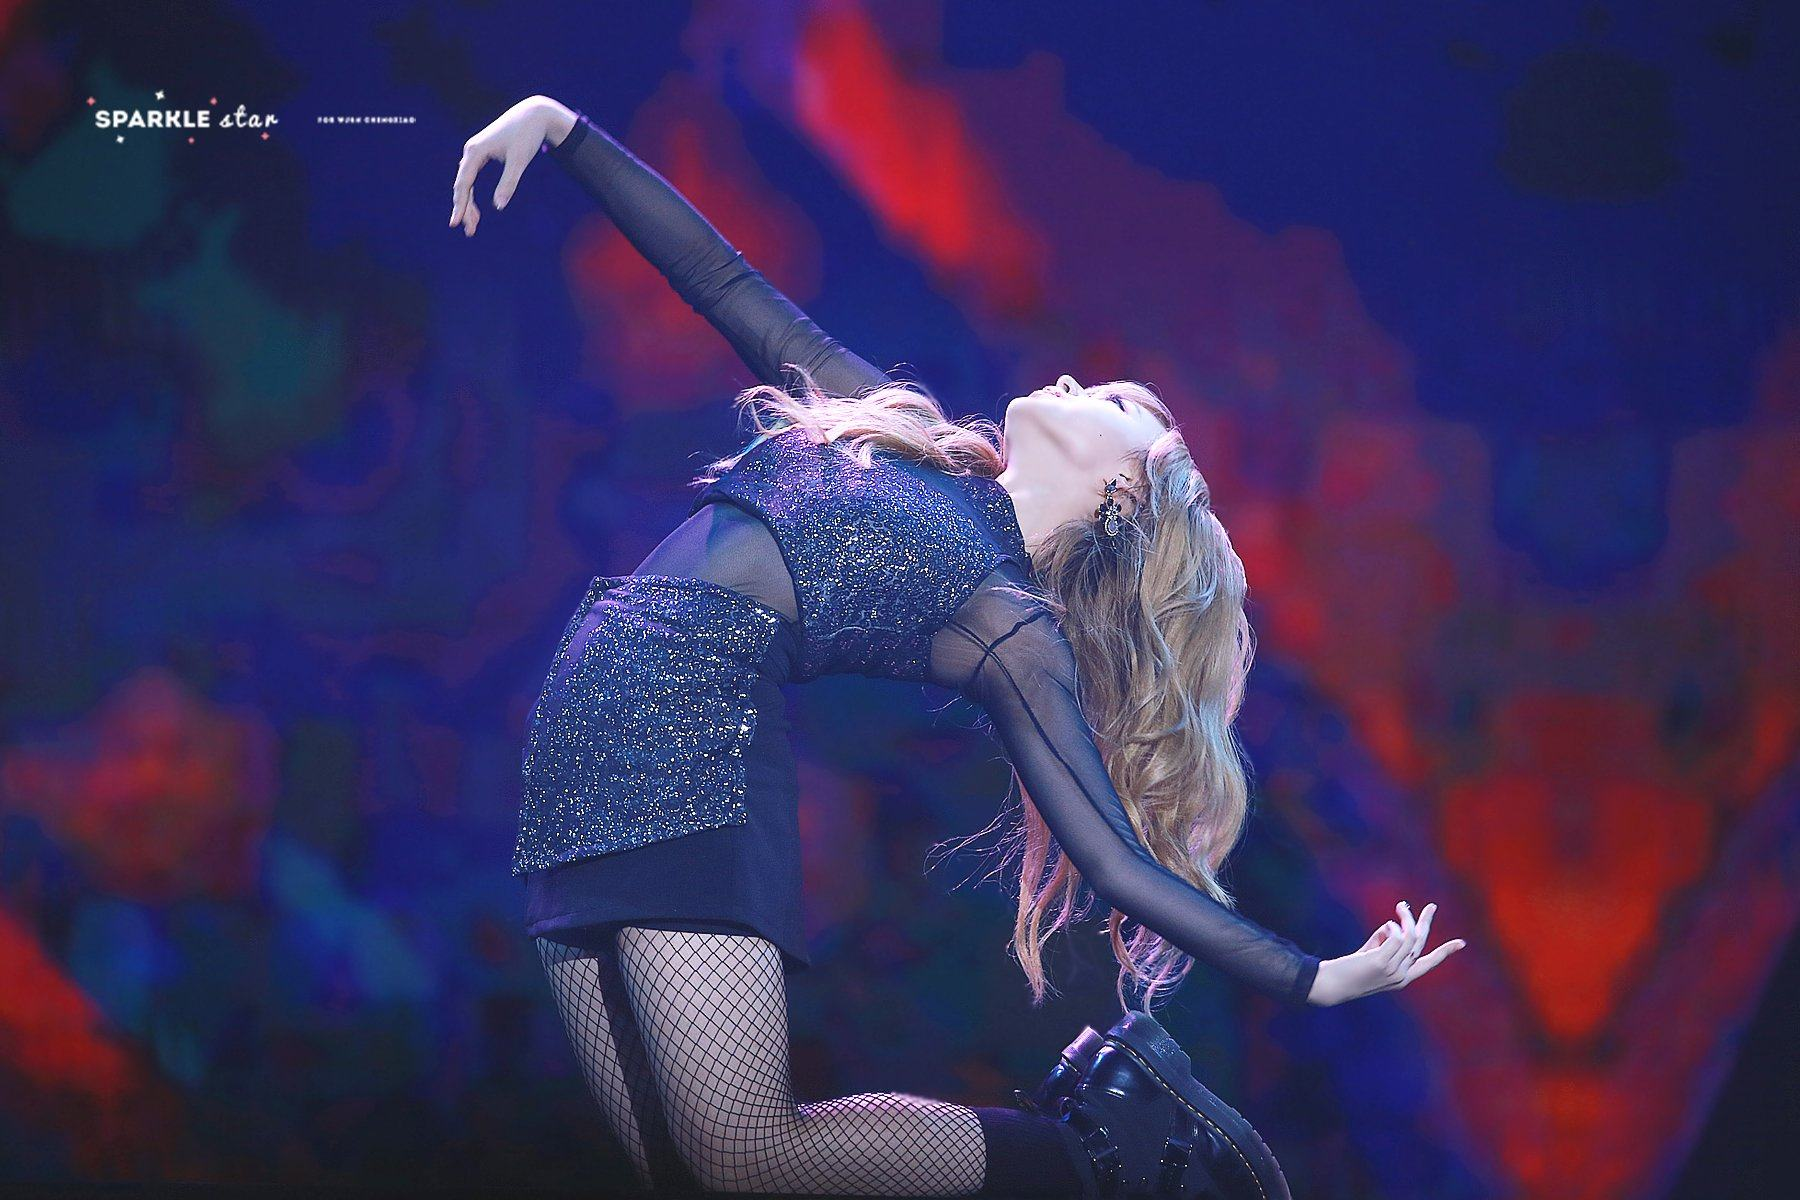 Fans are dying for more after Cheng Xiao's solo dance performance